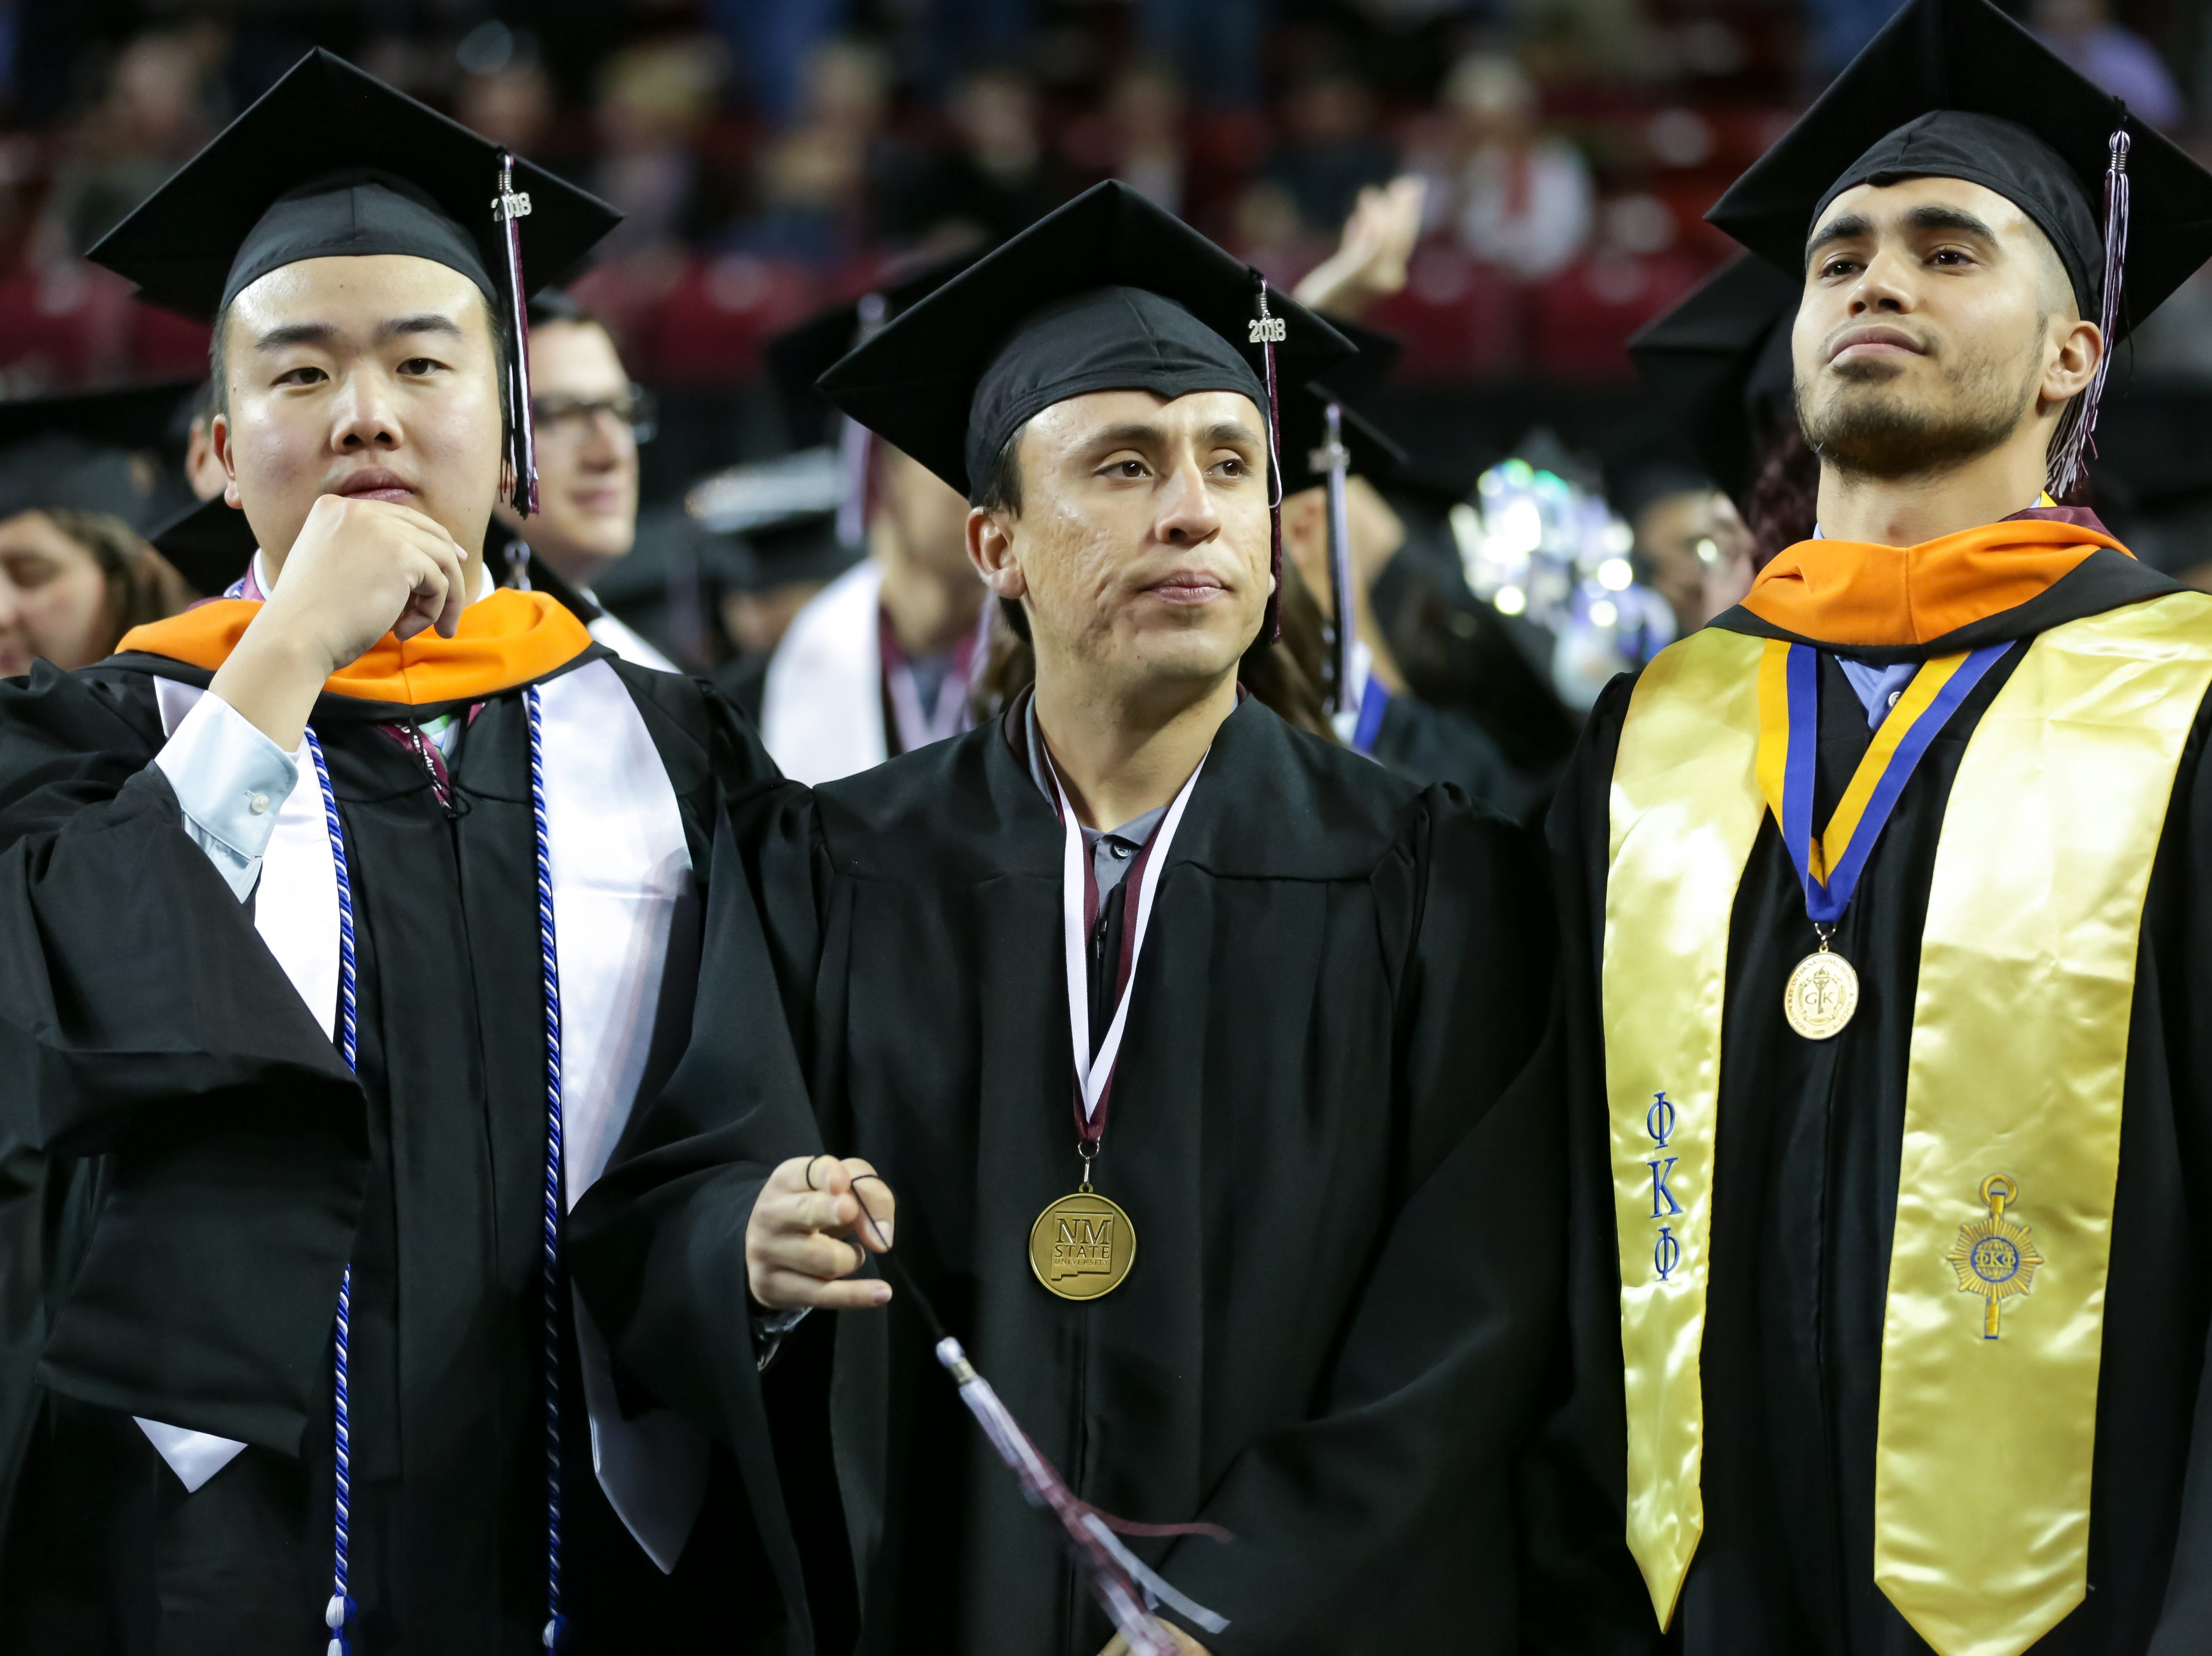 NMSU commencement ceremony images